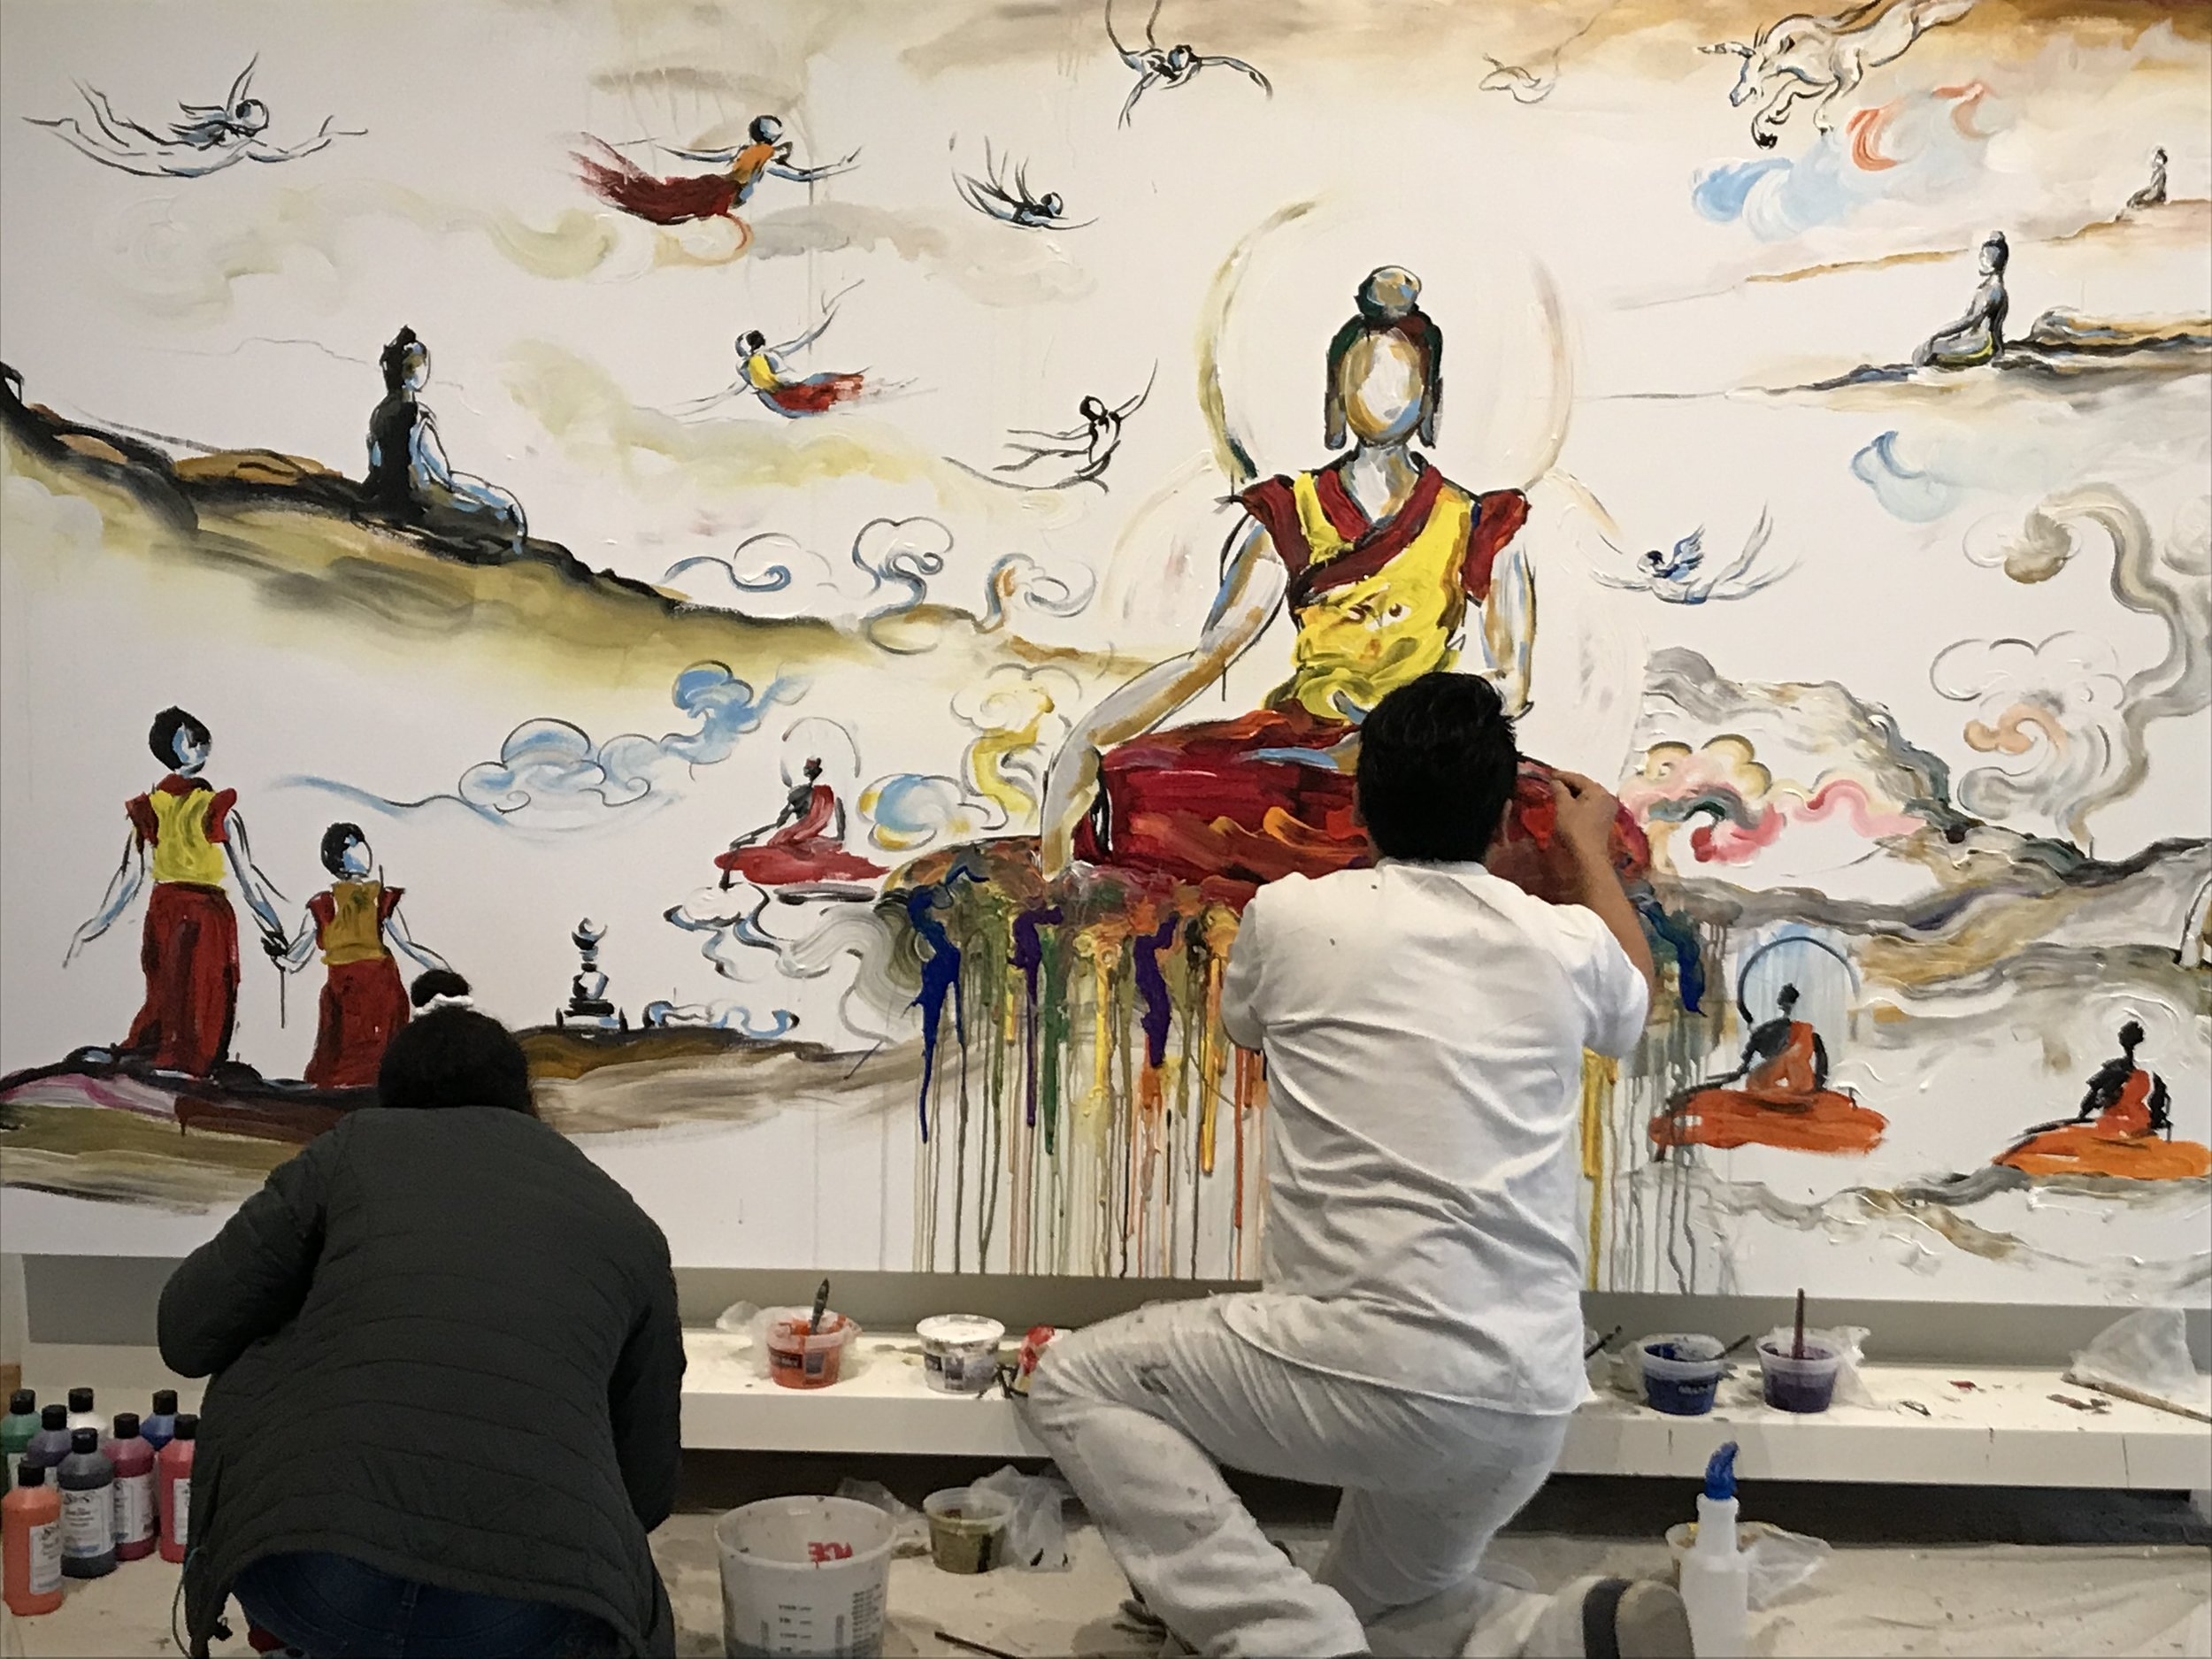 Tibetan artist Tashi Norbu paints at the University of Wyoming Art Museum